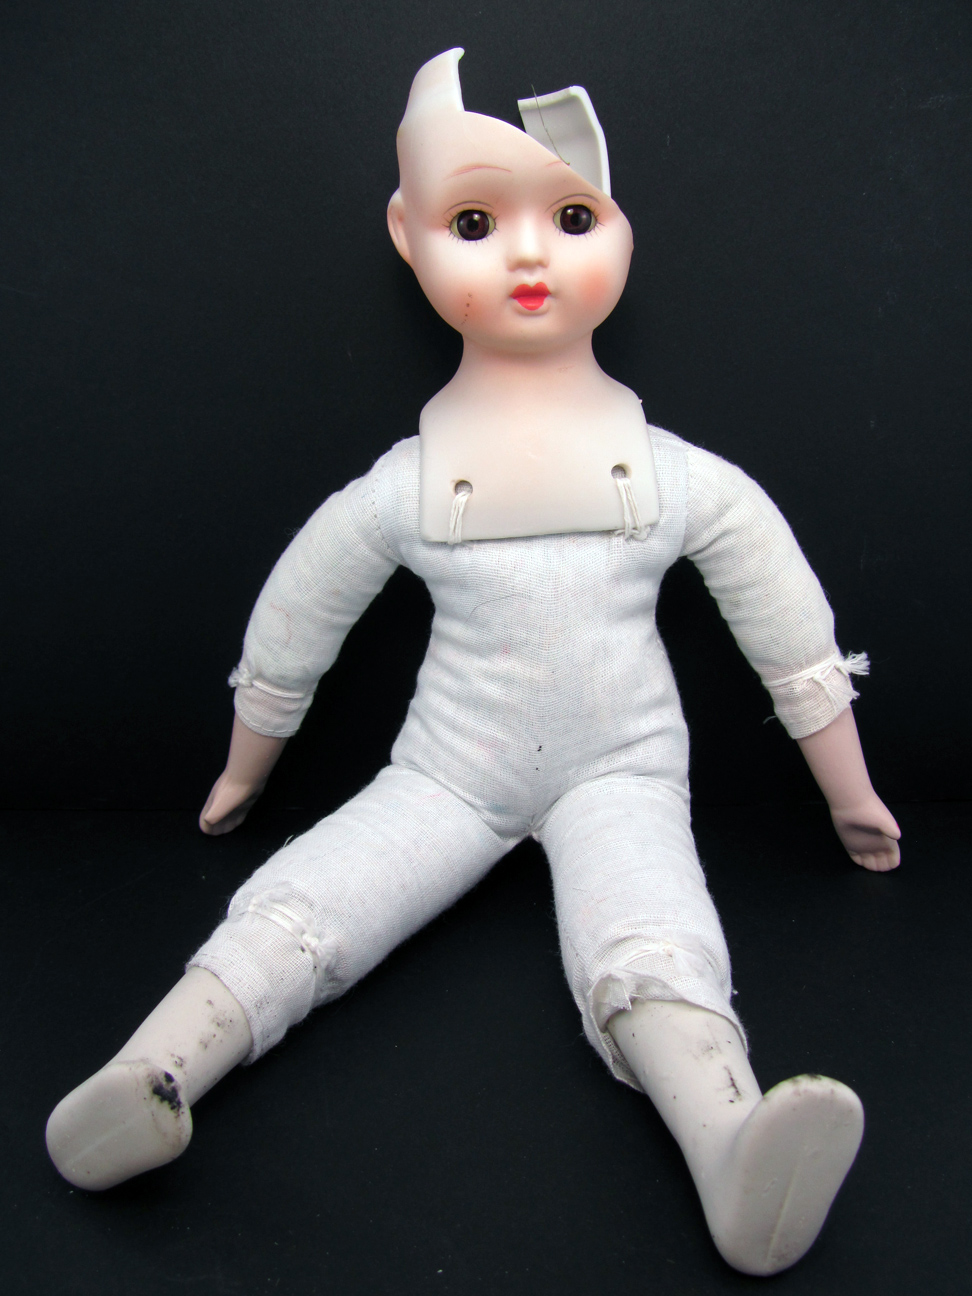 Another Broken Doll Needing Love